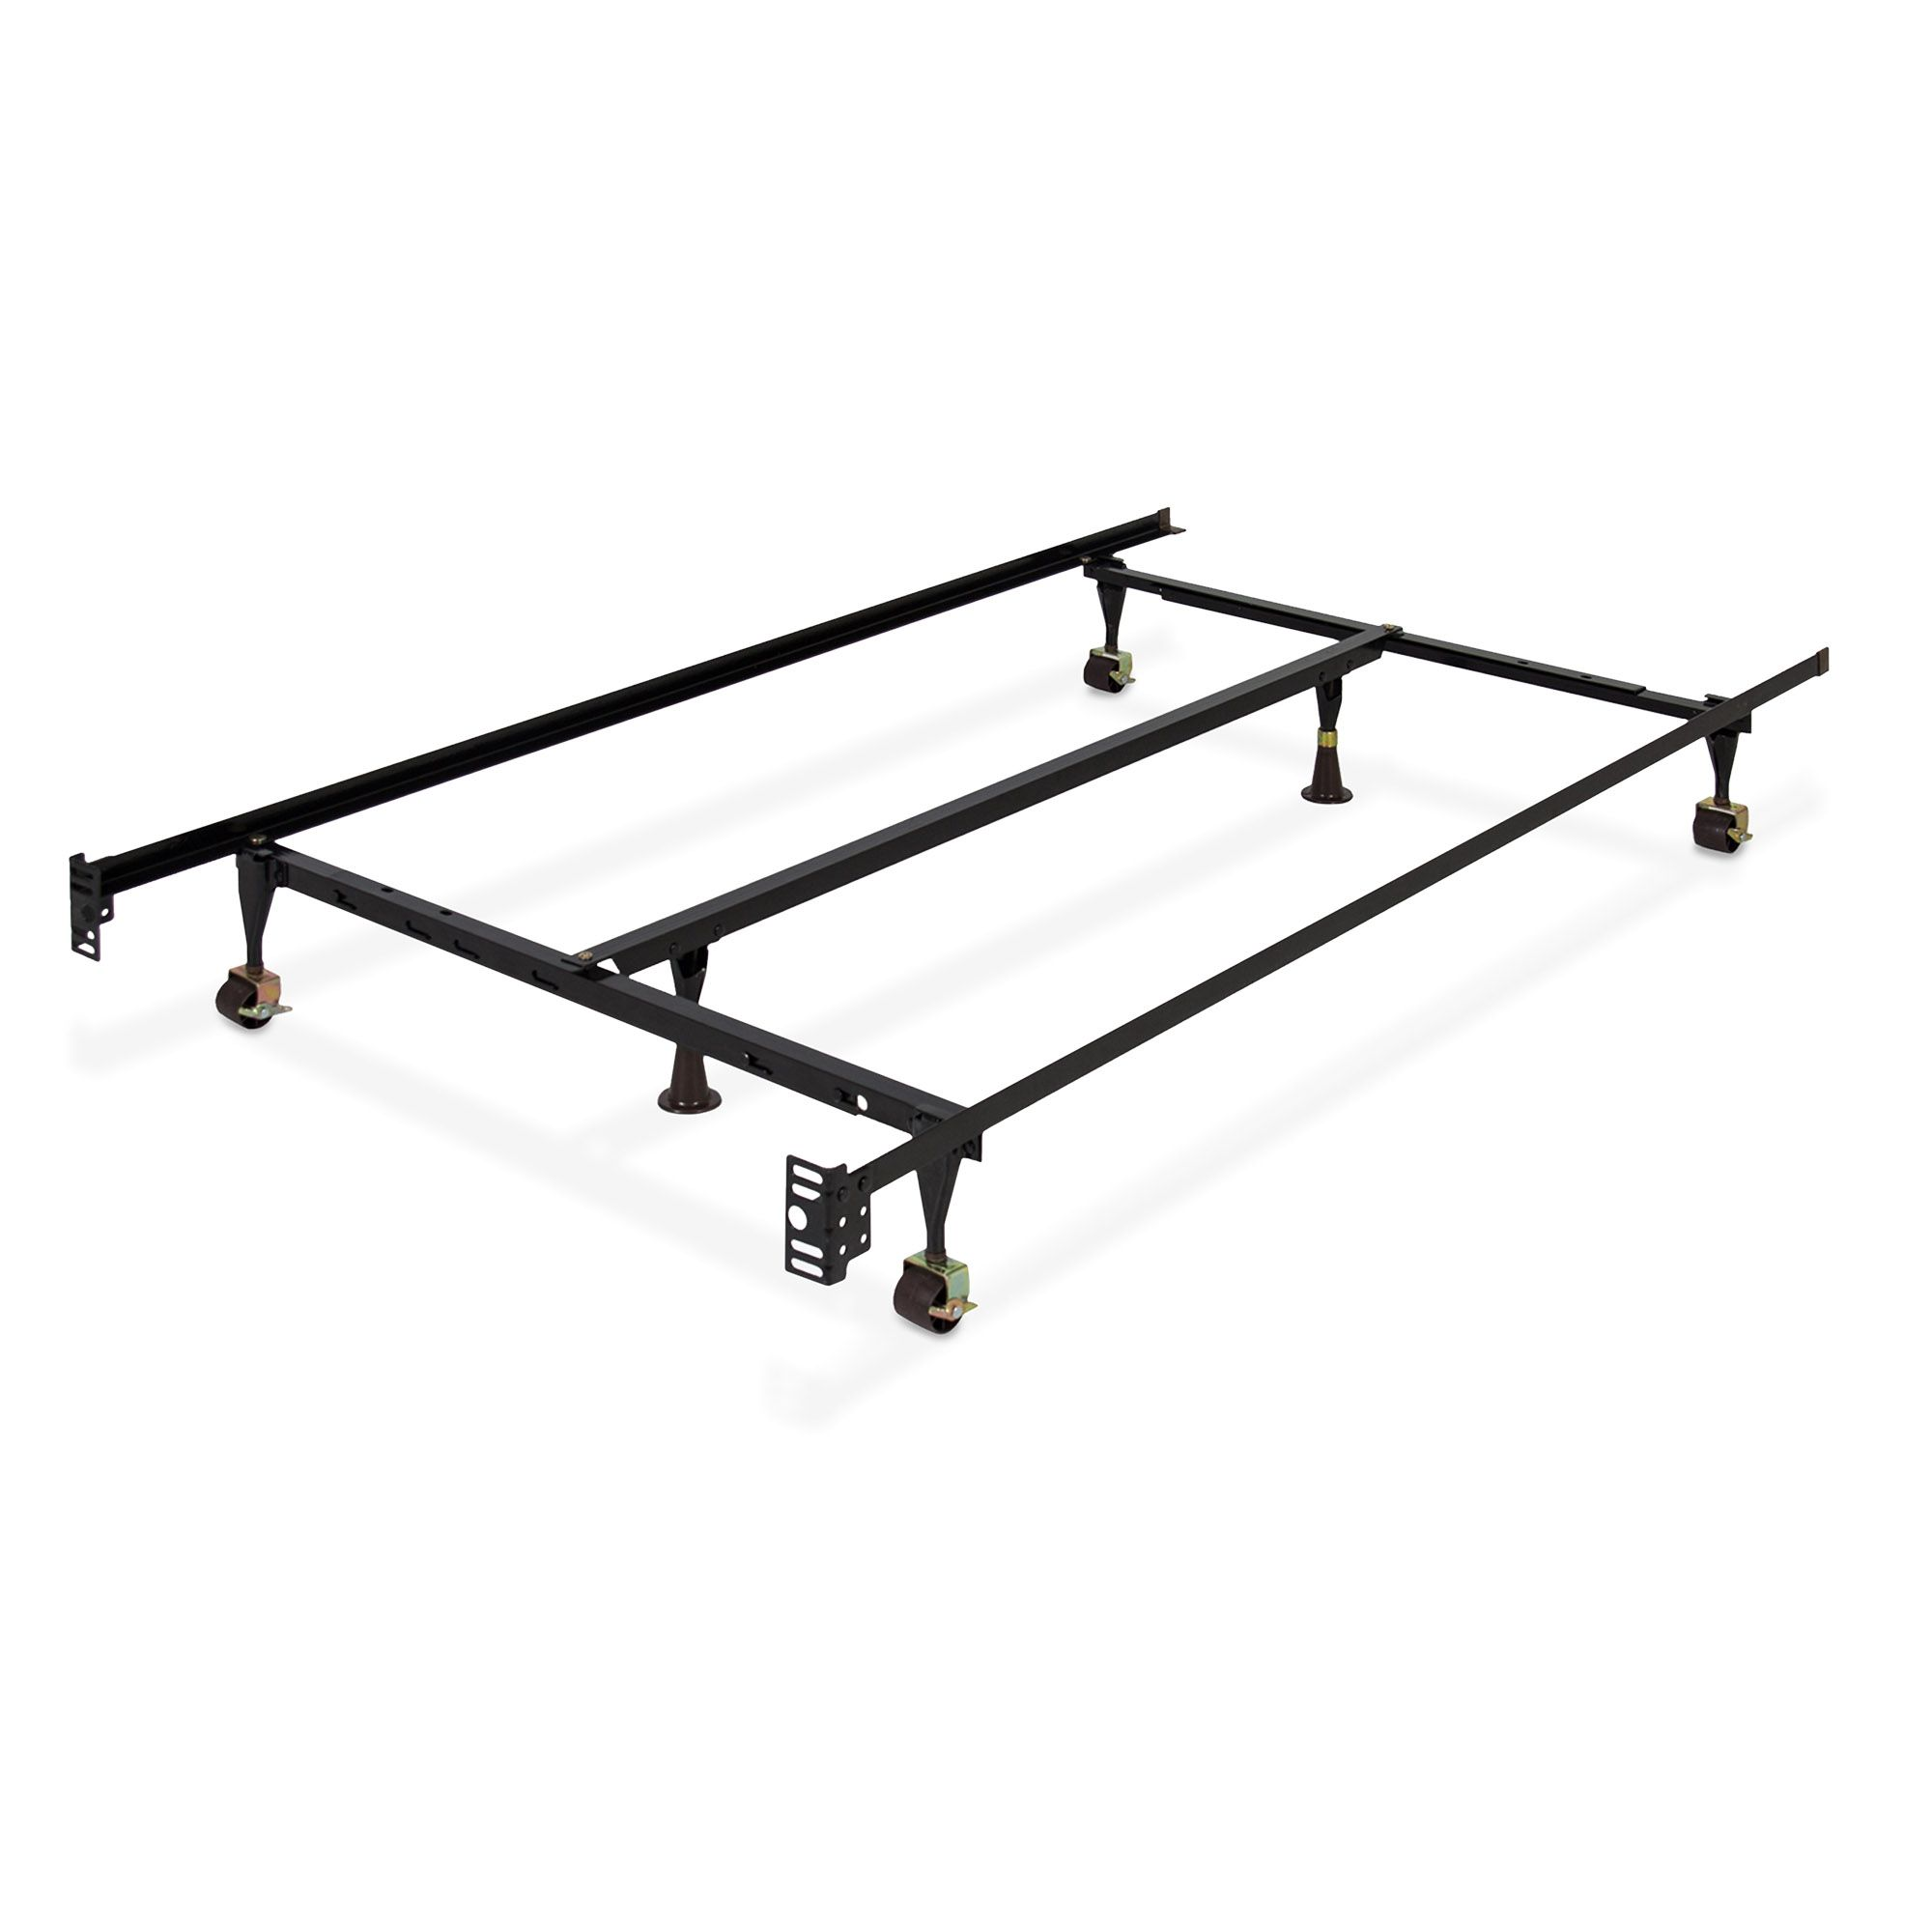 Home Metal Beds Adjustable Bed Frame Bed Frame